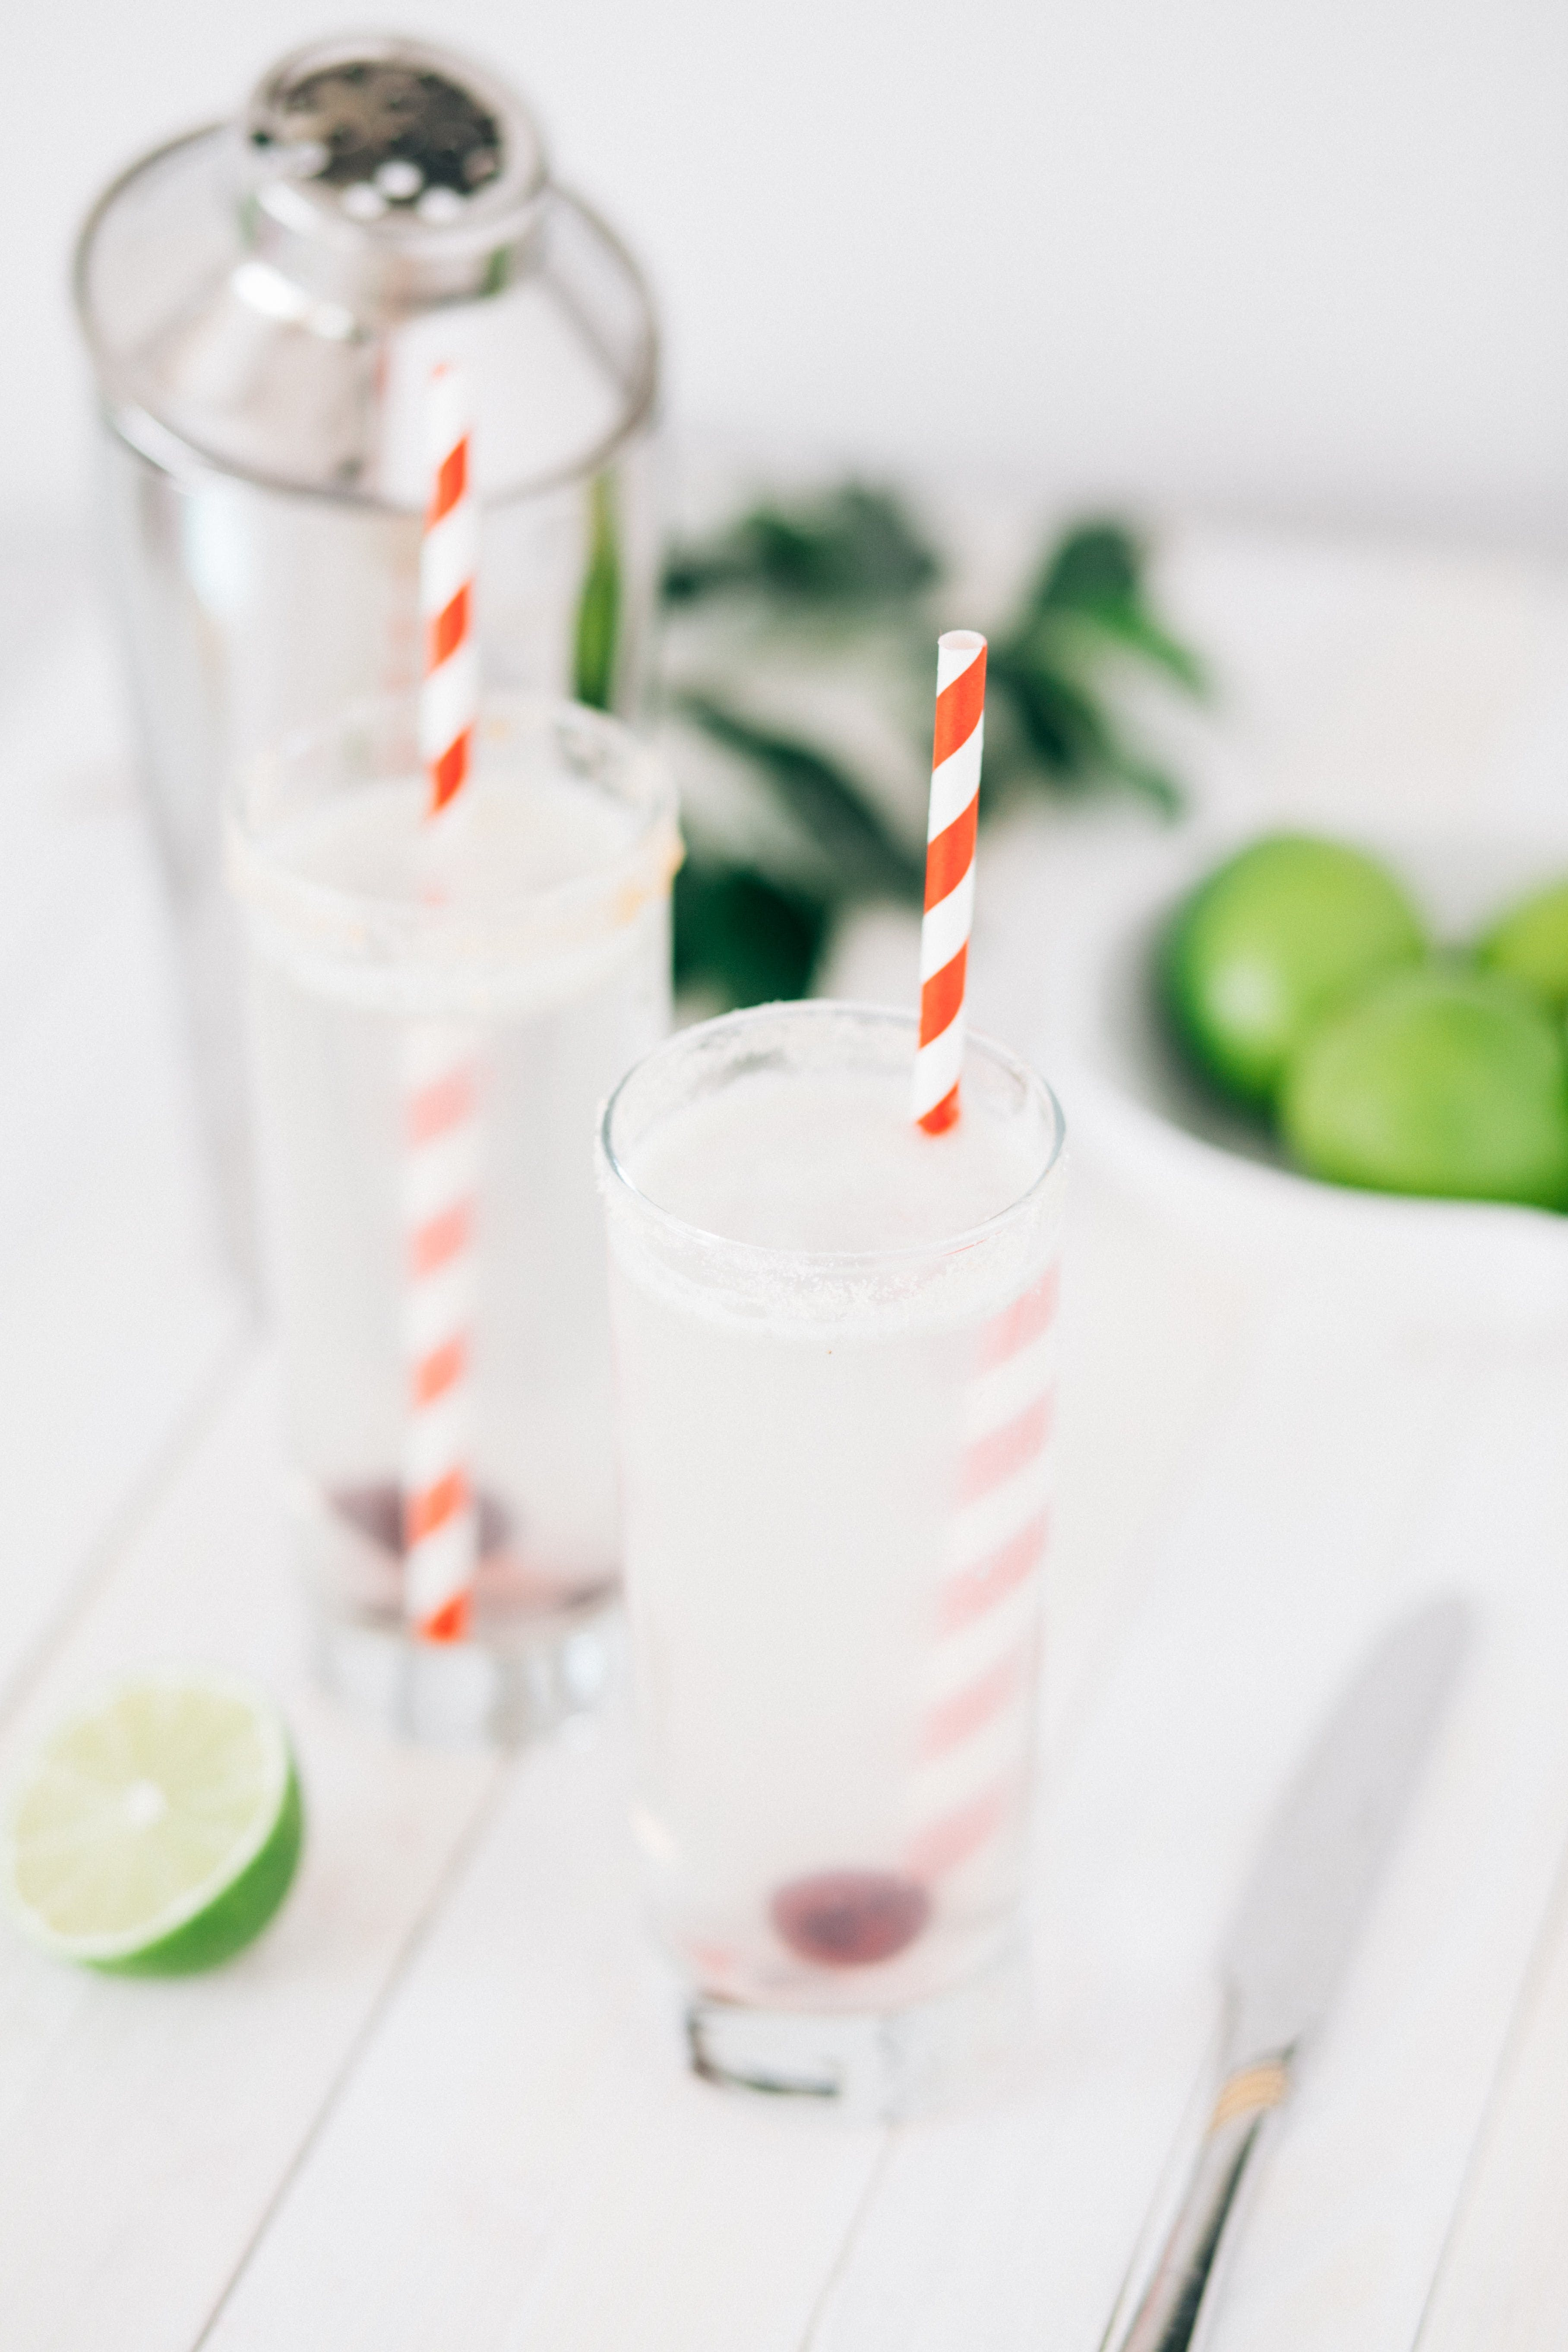 Two Clear Drinking Glasses With Straws